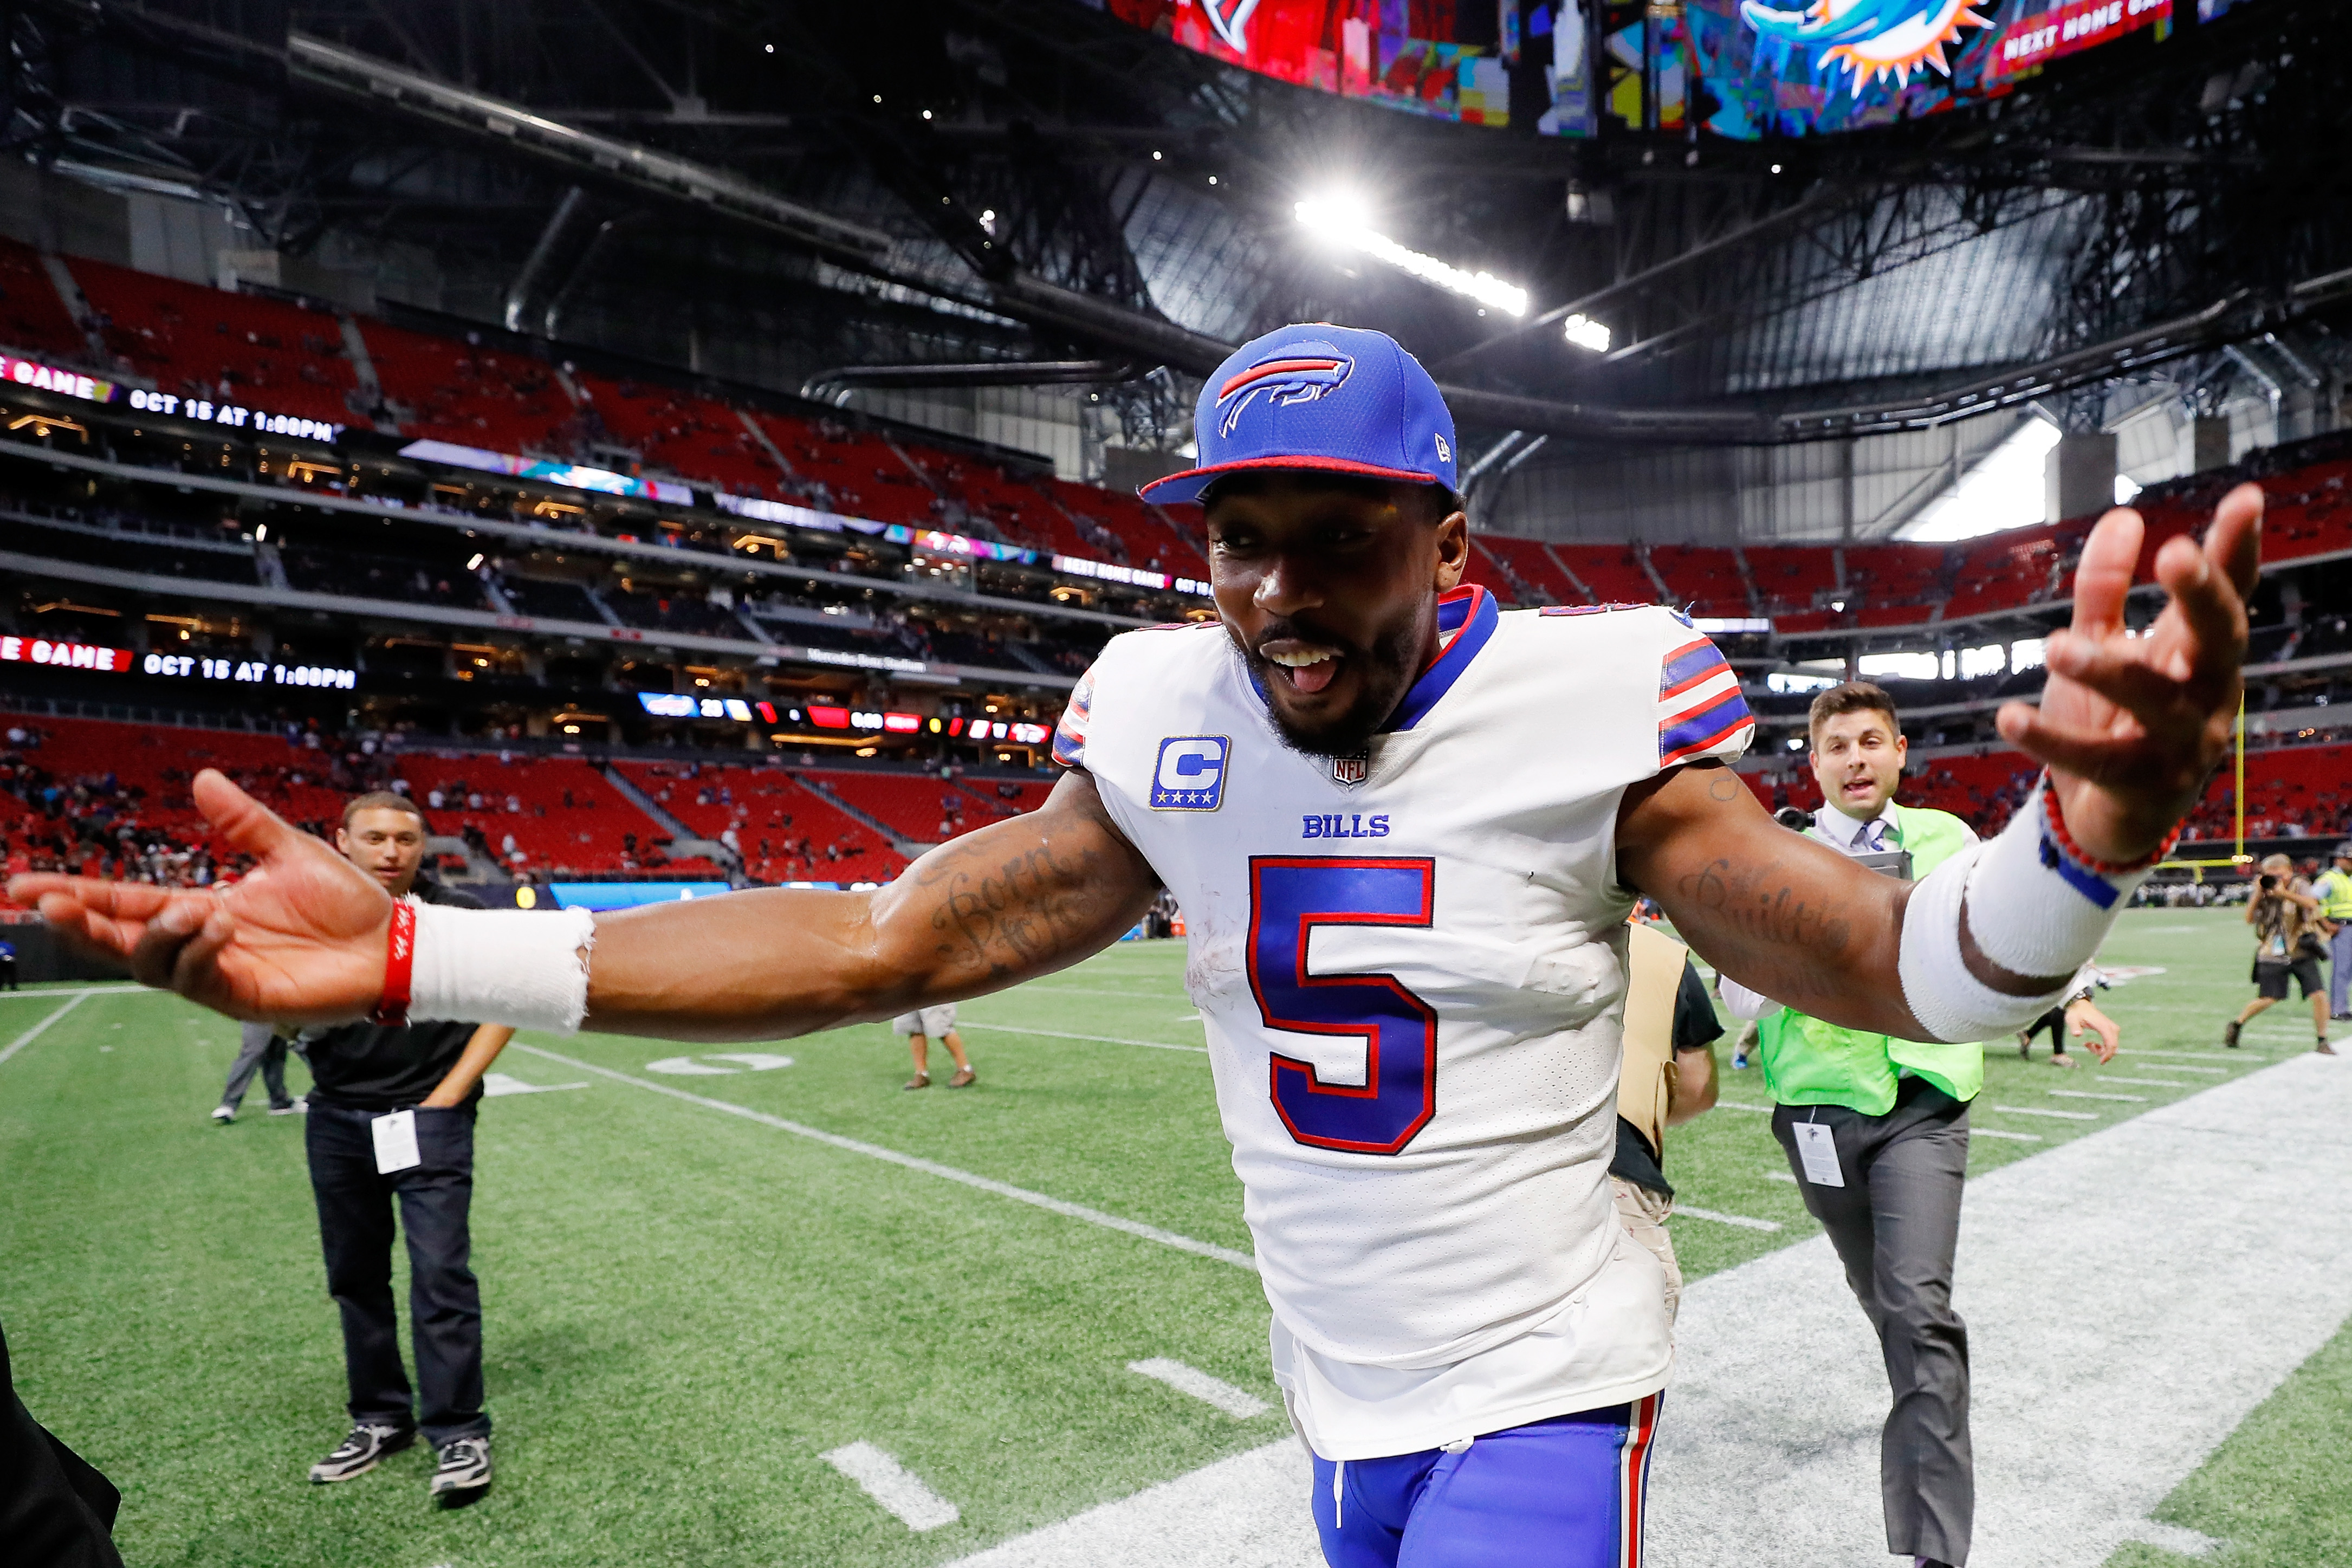 Bills WR Matthews, LB Humber out indefinitely